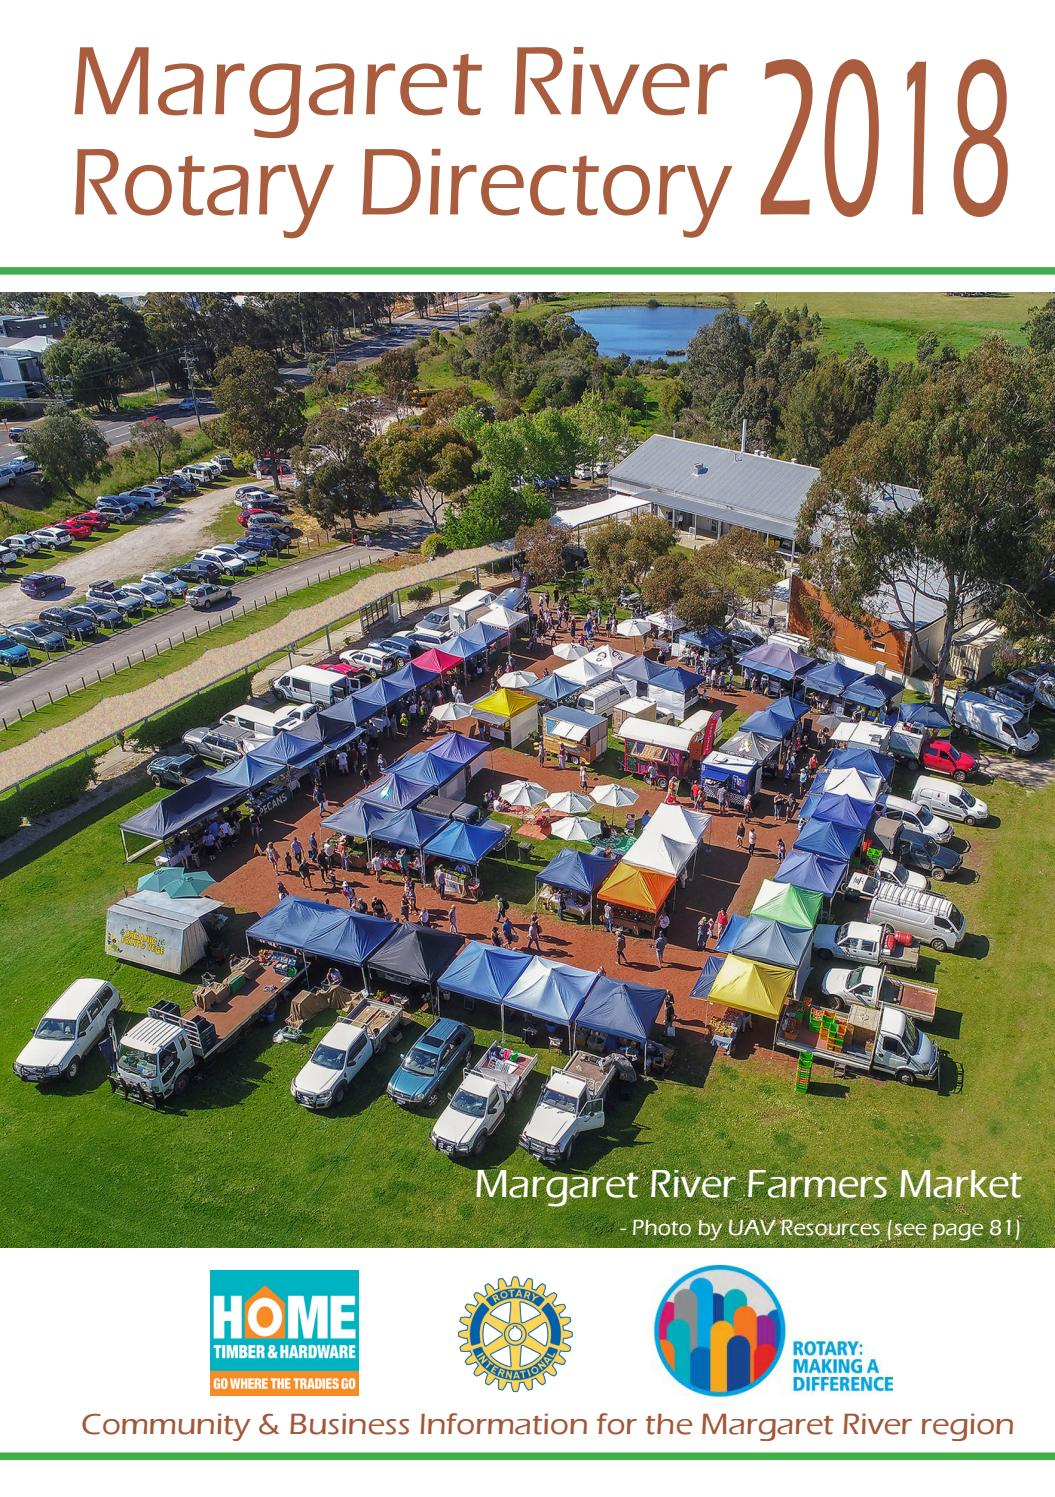 4425fcd7e Margaret River Rotary Directory 2018 by George Teasdale - issuu